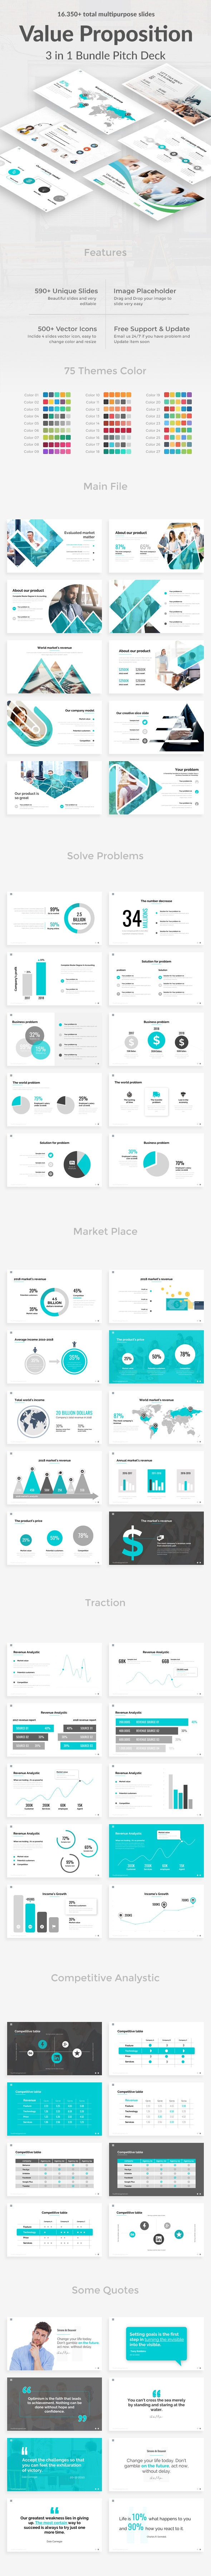 Value Proposition 3 in 1 Pitch Deck Bundle Keynote Template - Business Keynote Templates